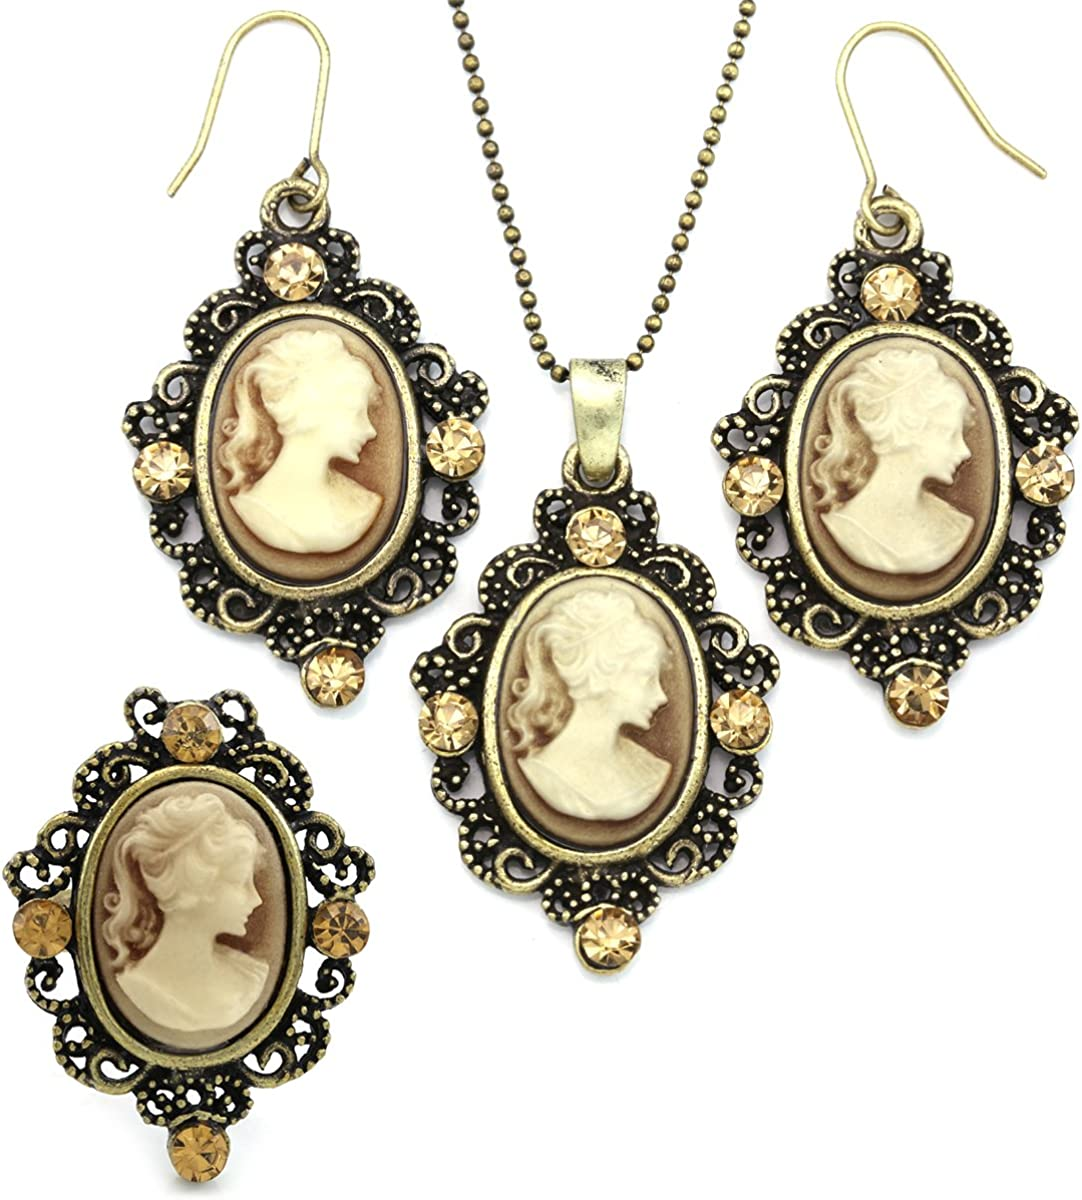 Brown Cameo Necklace Fashion Jewelry Ring Set Pendant Charm Dangle Drop Earrings